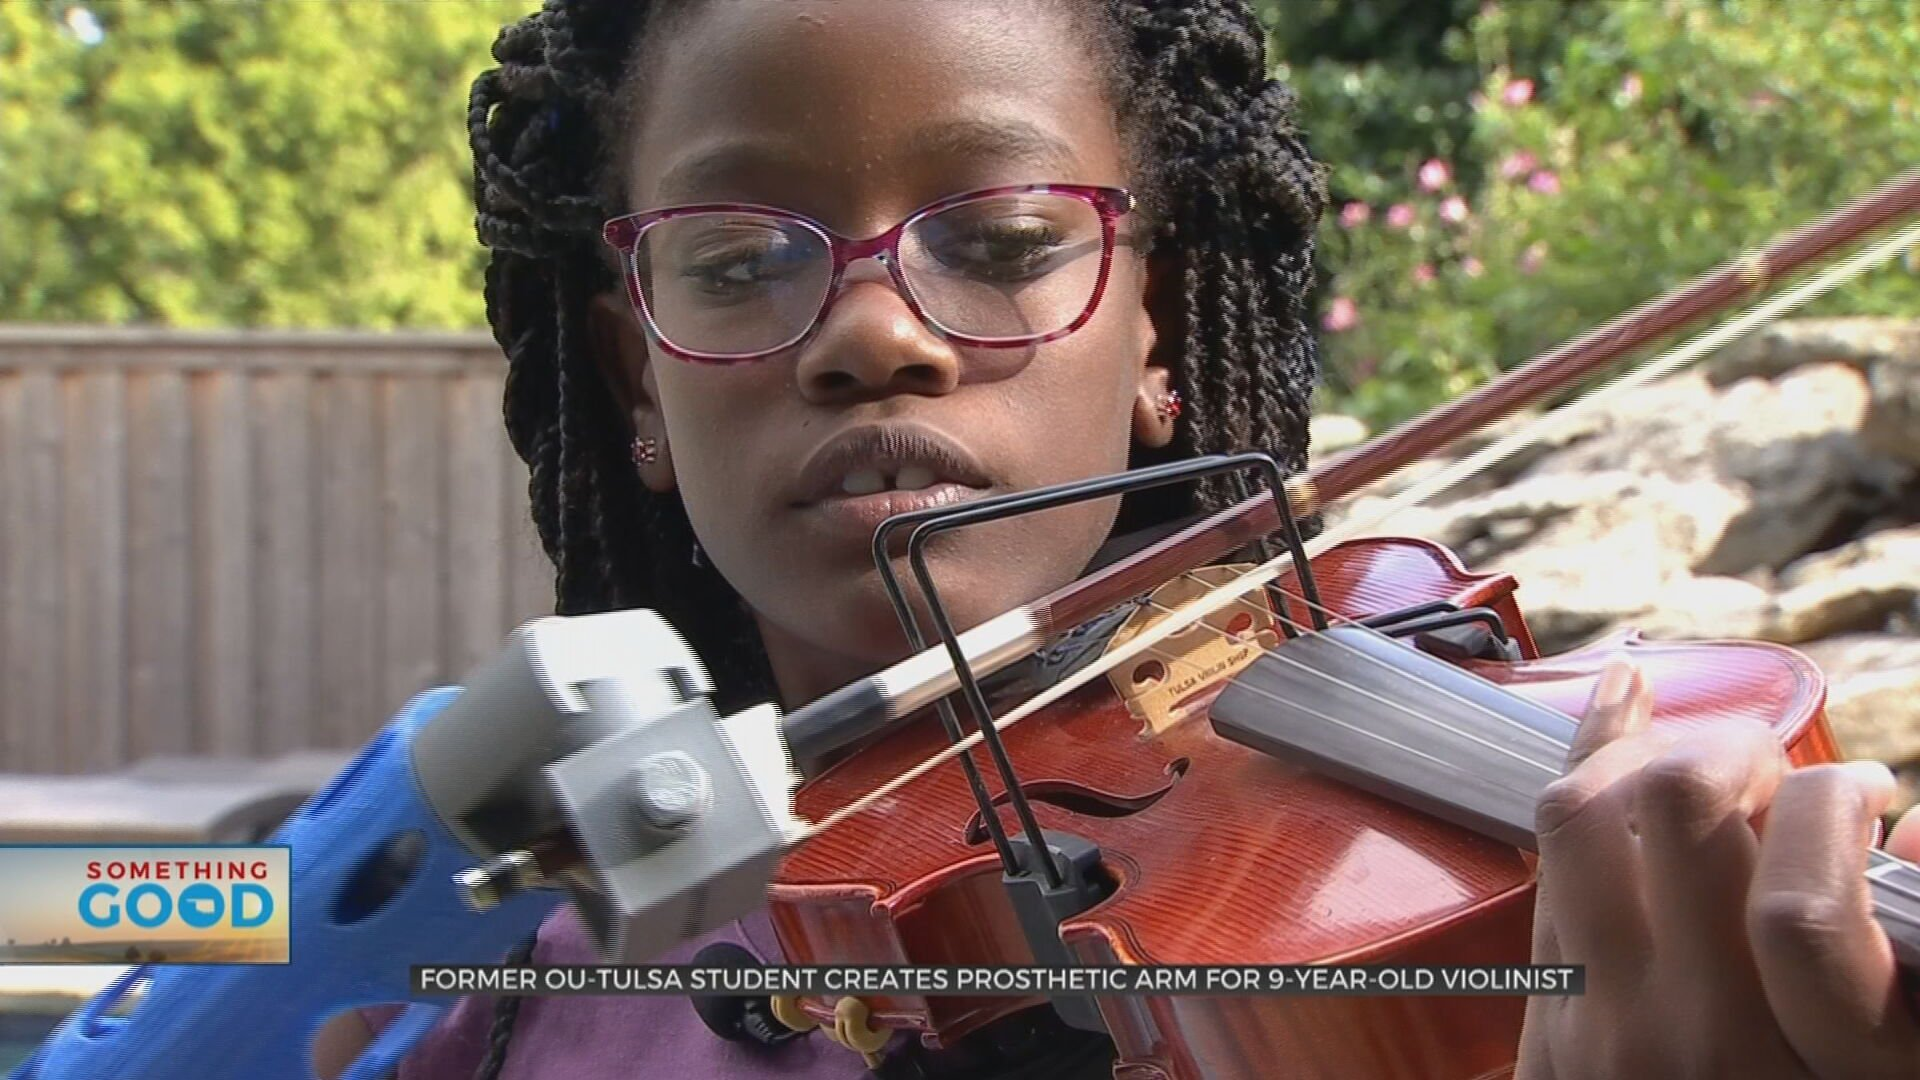 9-Year-Old Violinist Defies Odds With Help Of Former OU-Tulsa Student